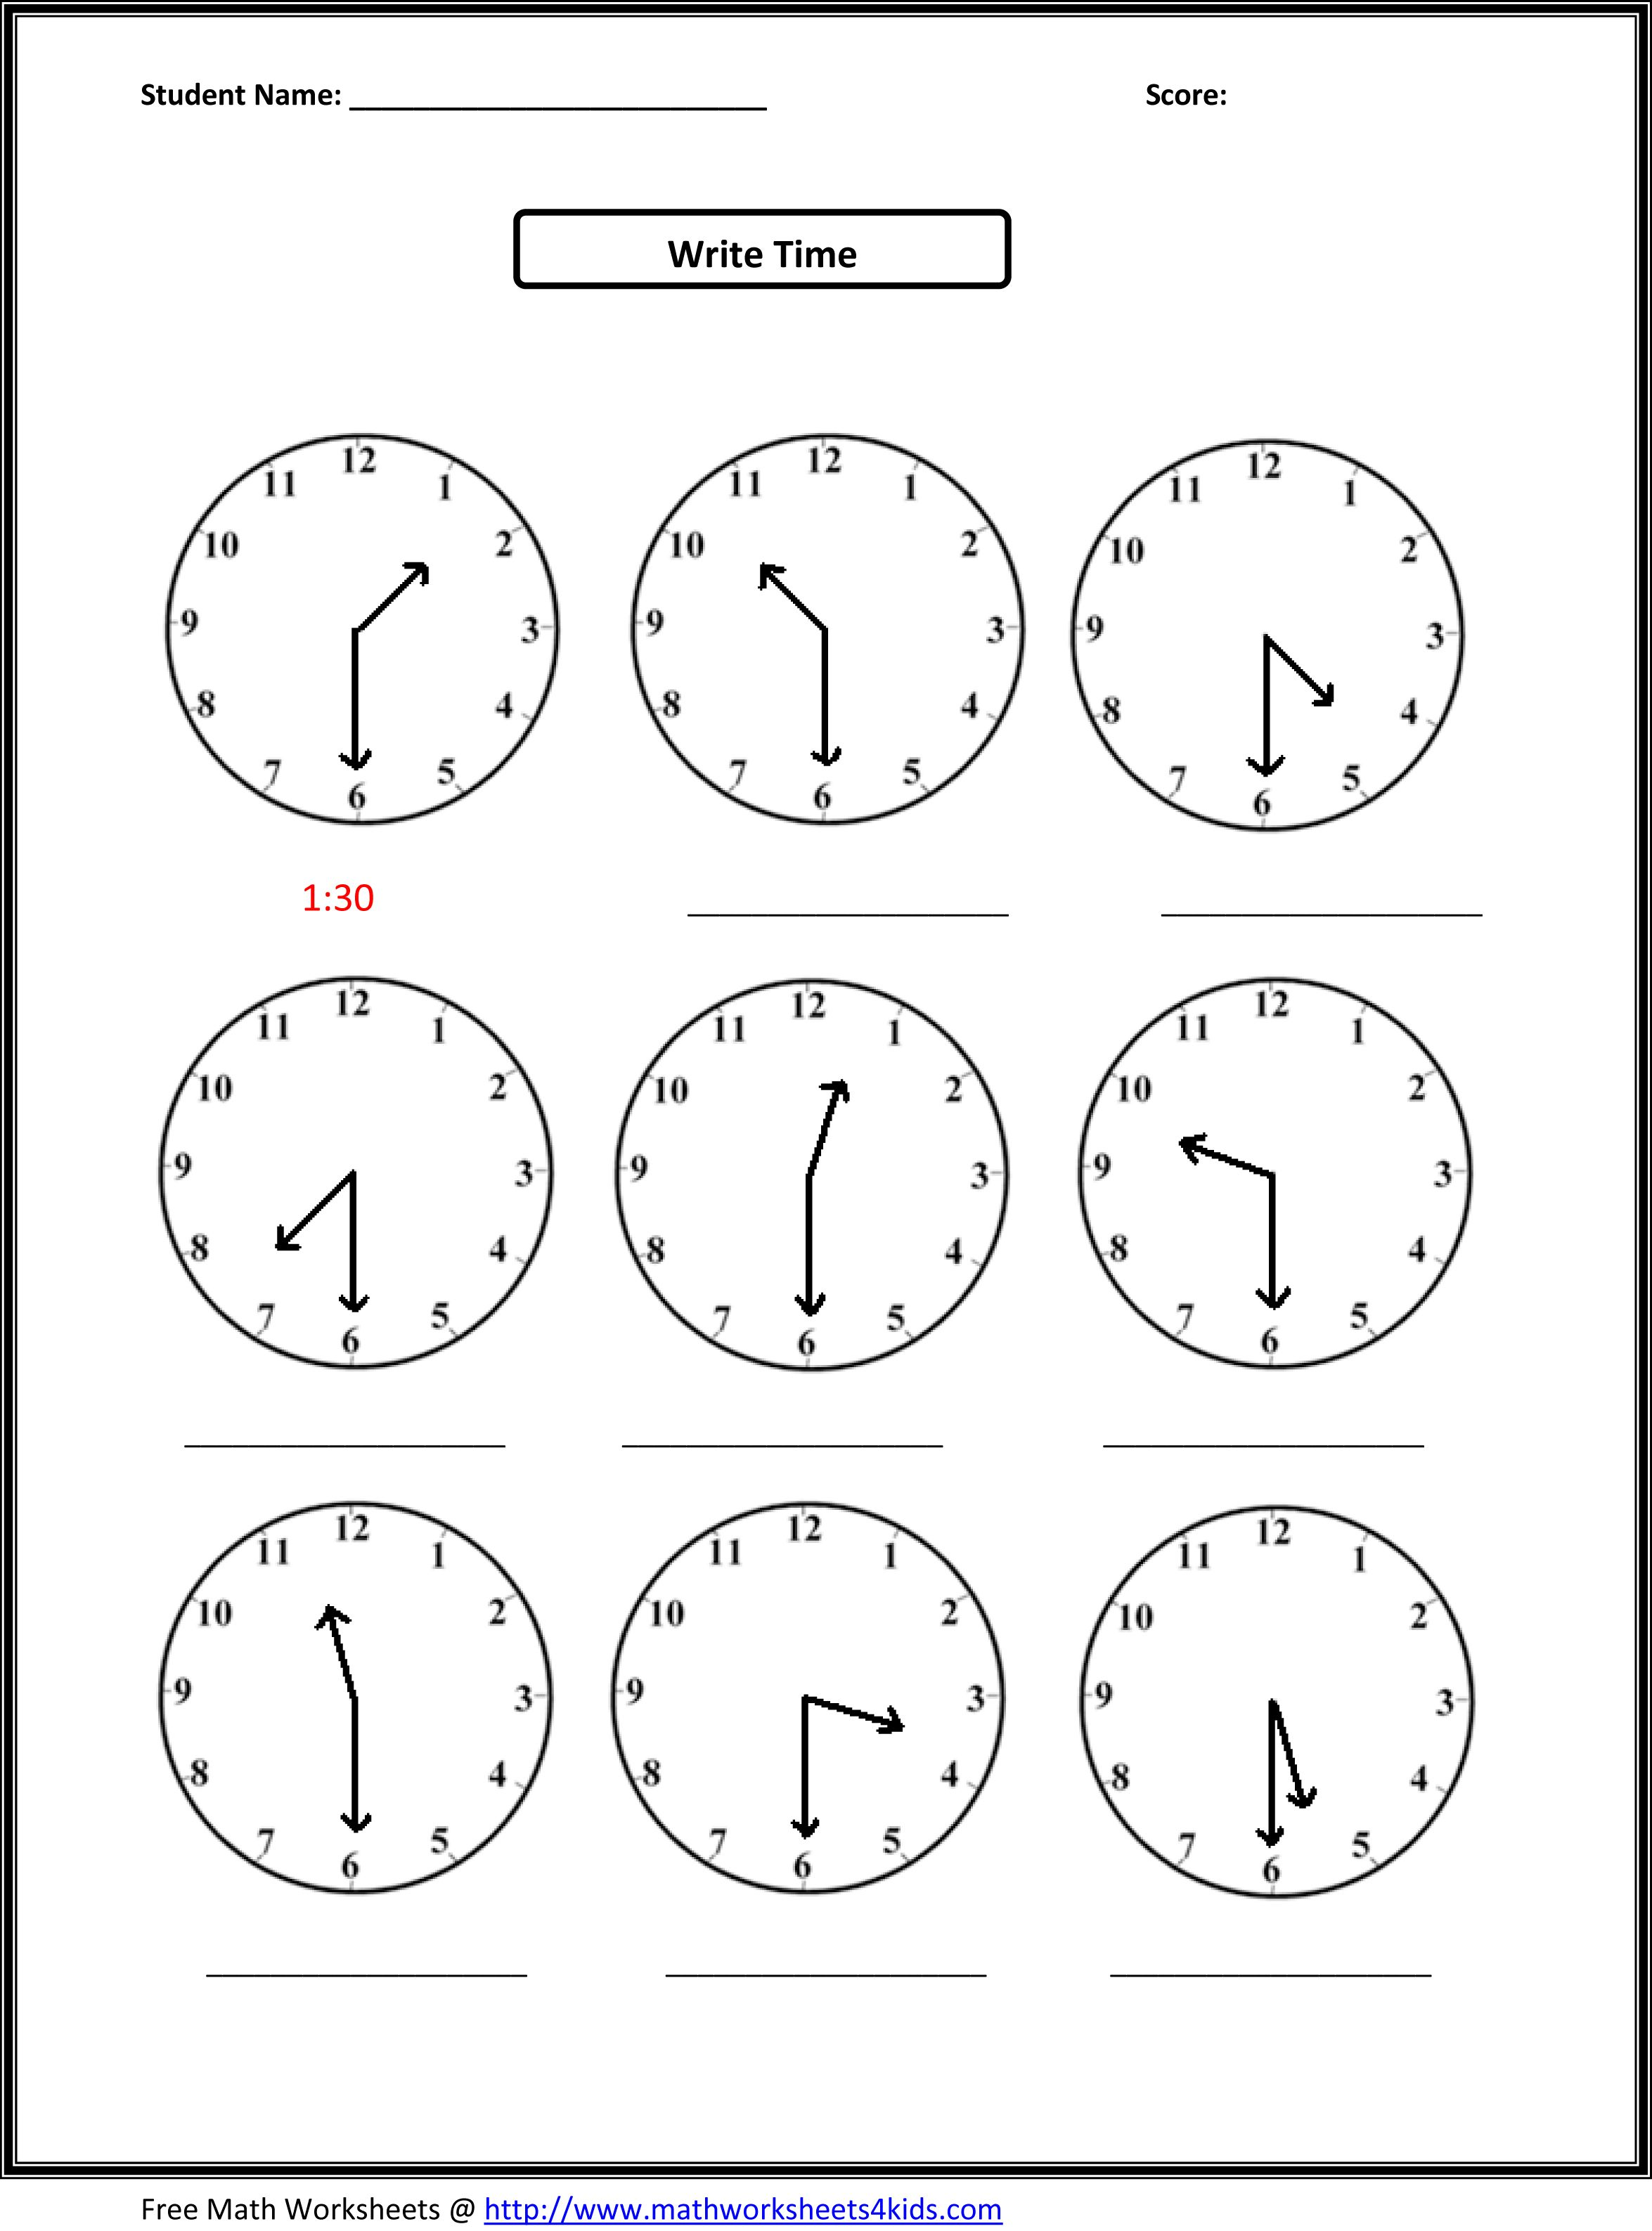 Weirdmailus  Marvellous Worksheet On Time For Grade   Reocurent With Exciting Free Printable Telling Time Worksheets Nd Grade  Reocurent With Extraordinary Equations With Integers Worksheets Also Worksheets For Kids Printable In Addition Math Worksheets For Grade  Algebra And How To Lock Excel Worksheet As Well As Adjective Worksheets For Grade  Additionally Kindergarten  English Worksheets From Reocurentcom With Weirdmailus  Exciting Worksheet On Time For Grade   Reocurent With Extraordinary Free Printable Telling Time Worksheets Nd Grade  Reocurent And Marvellous Equations With Integers Worksheets Also Worksheets For Kids Printable In Addition Math Worksheets For Grade  Algebra From Reocurentcom